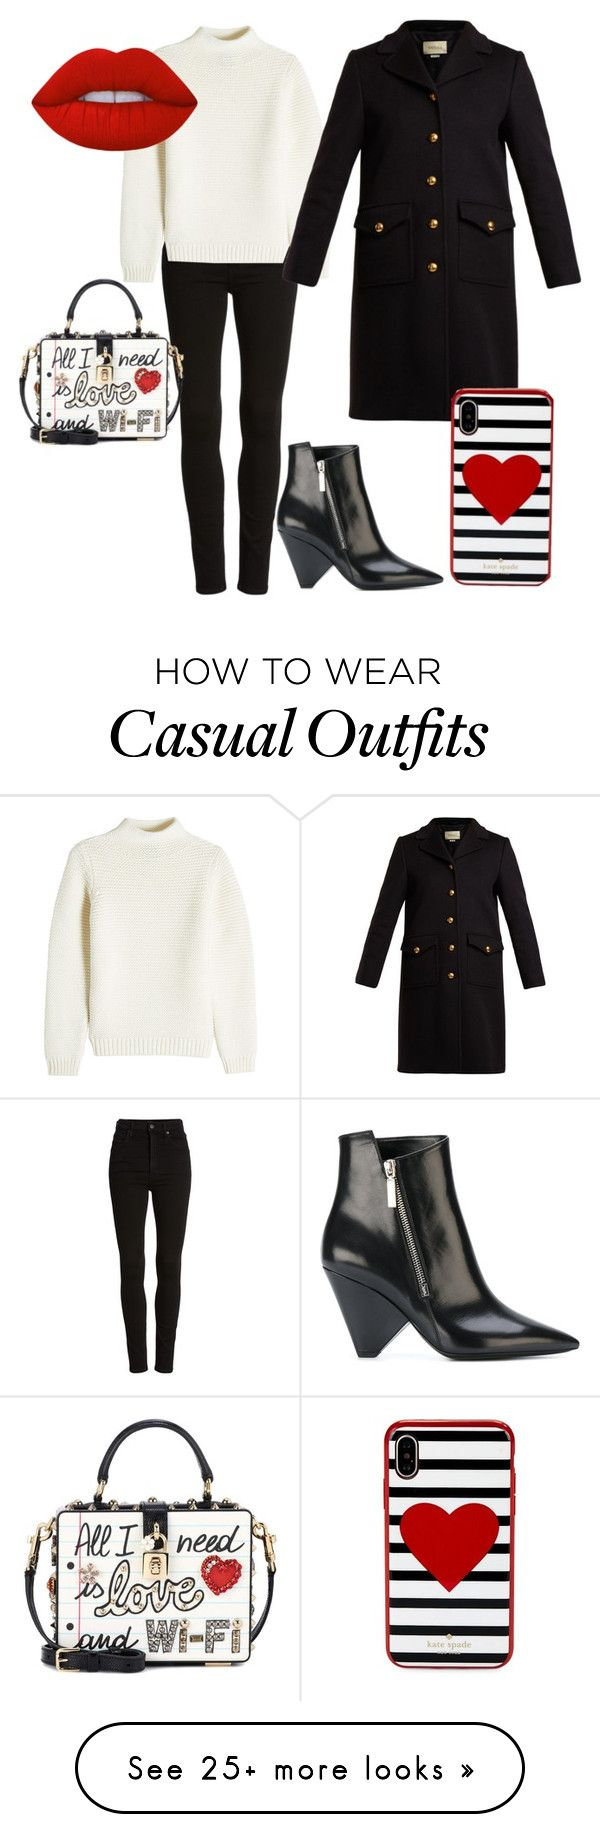 """""""Pritty Casual"""" by aleks-stanisavljevic on Polyvore featuring Citizens of Humanity, Dolce&Gabbana, A.P.C., Gucci, Yves Saint Laurent, Kate Spade and Lime Crime"""